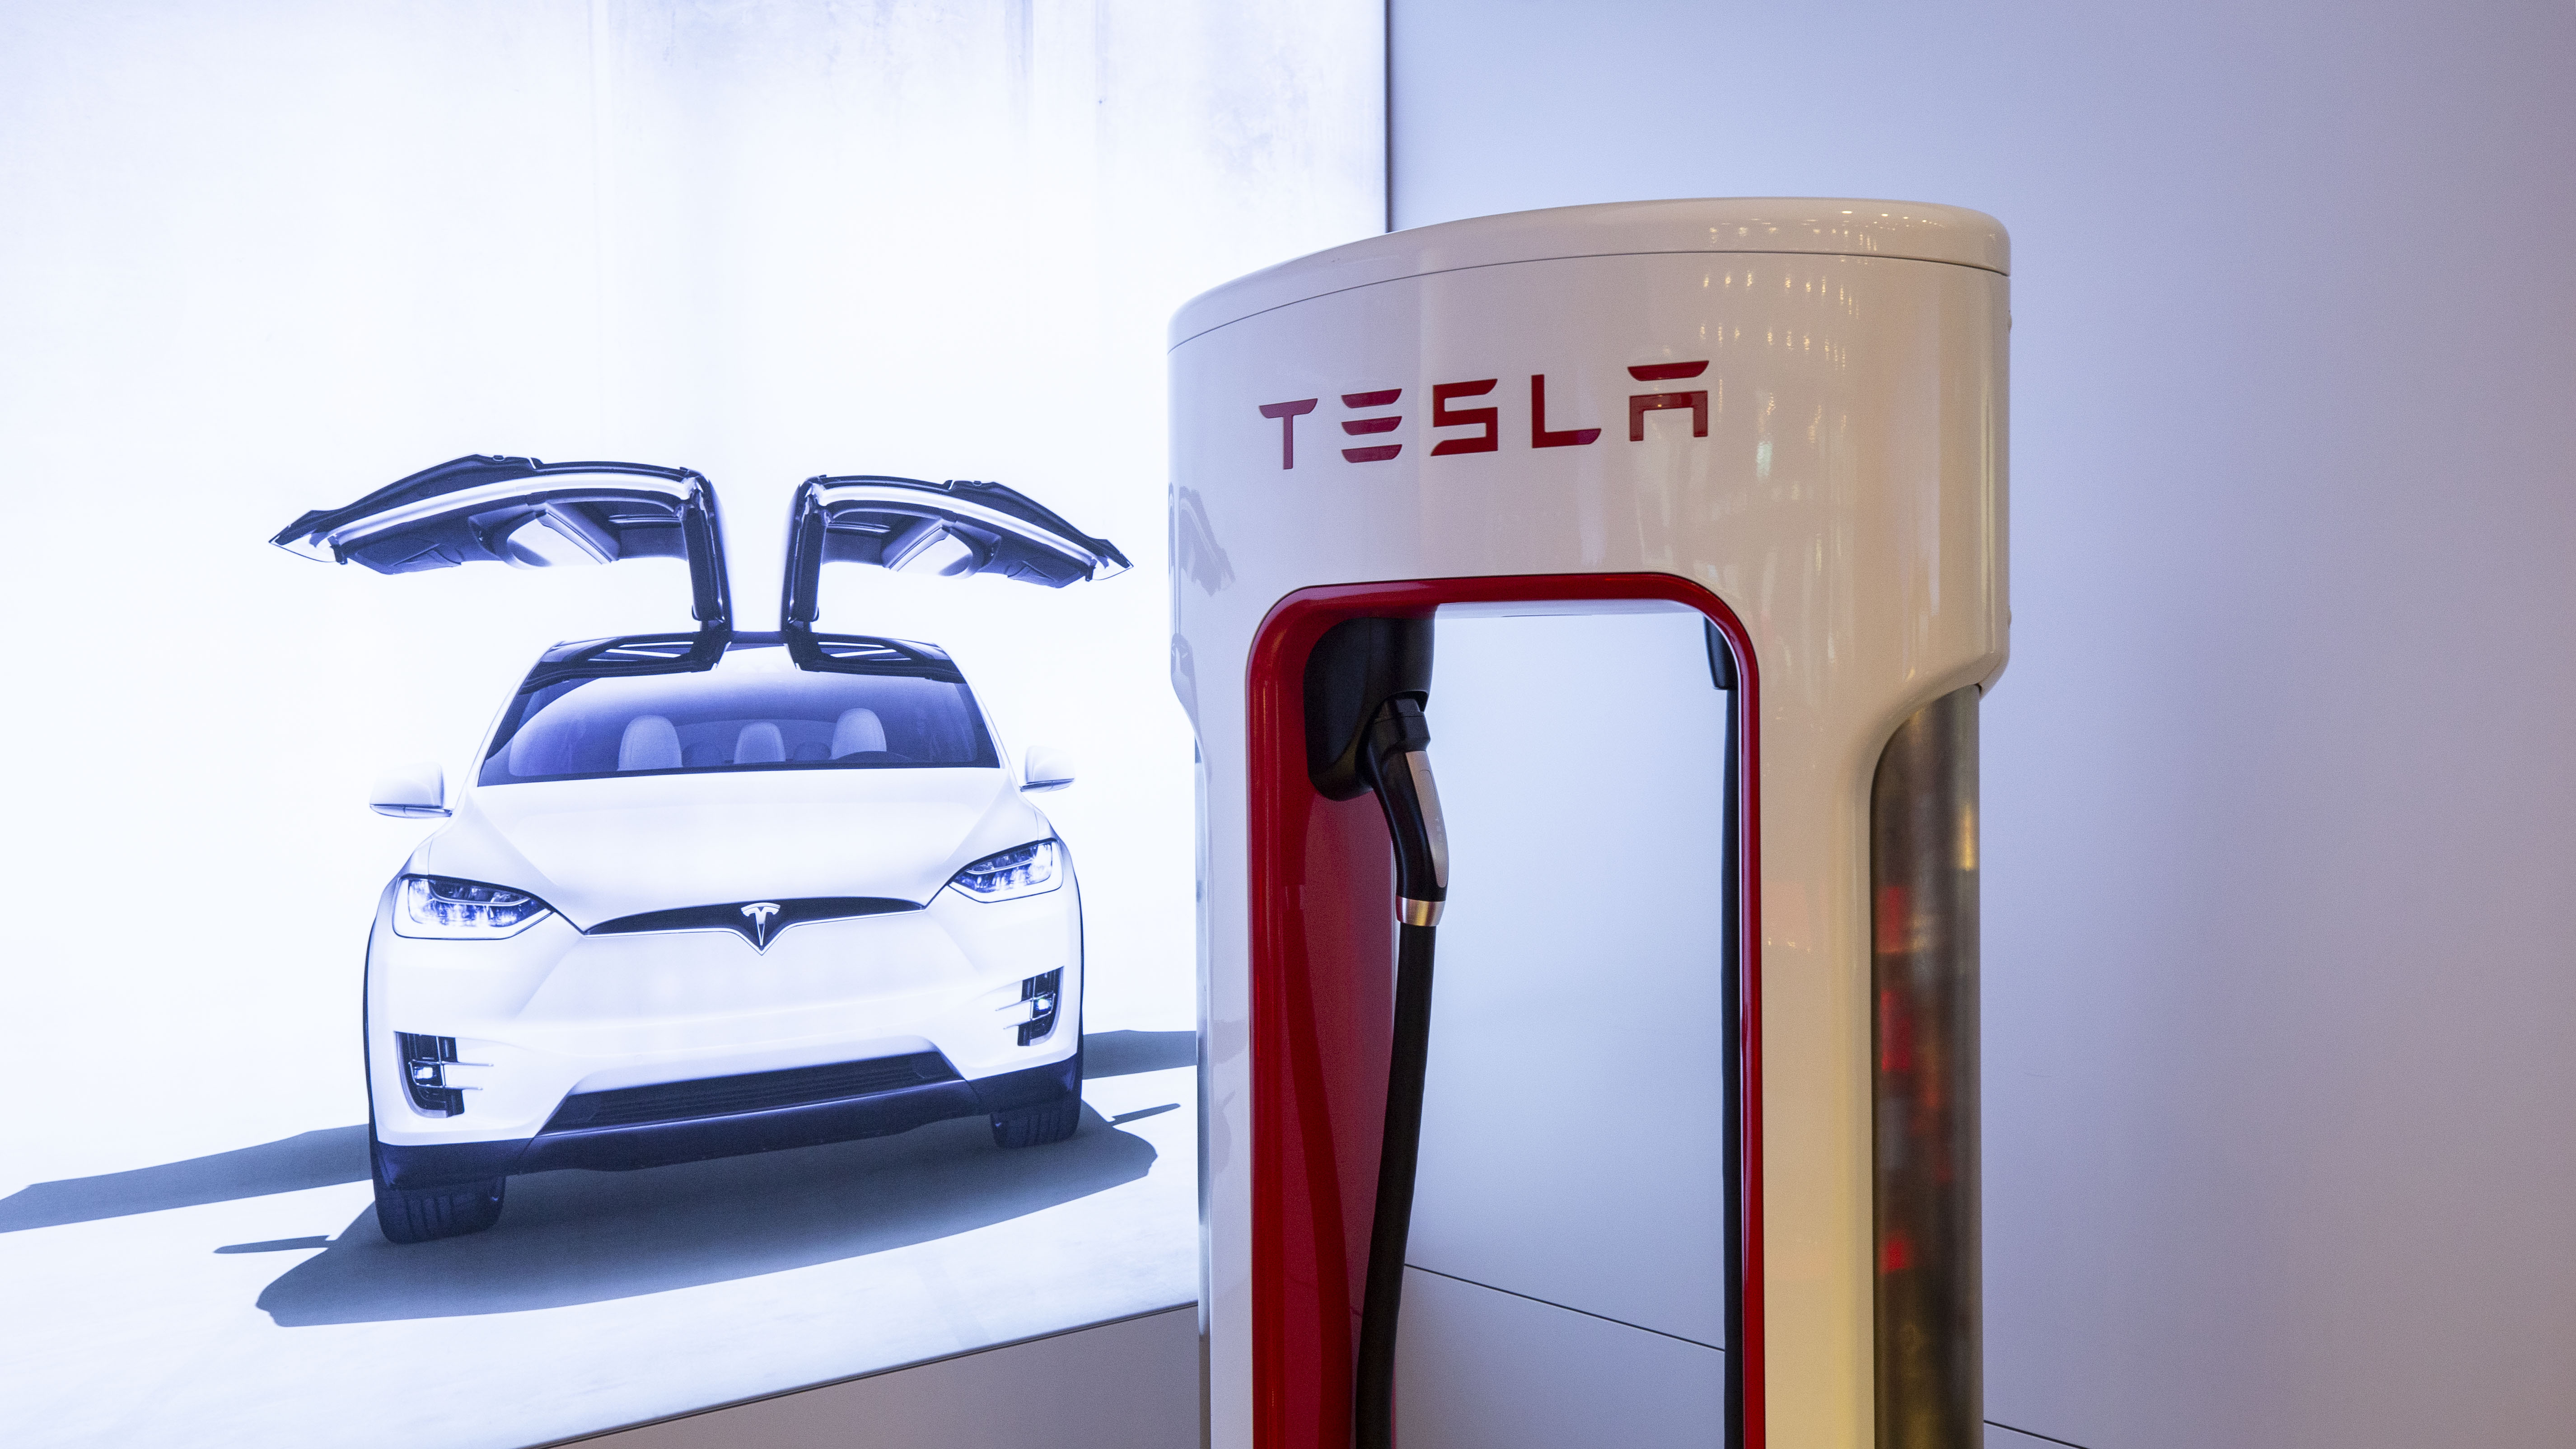 Tesla's new home charging station plugs into a wall outlet